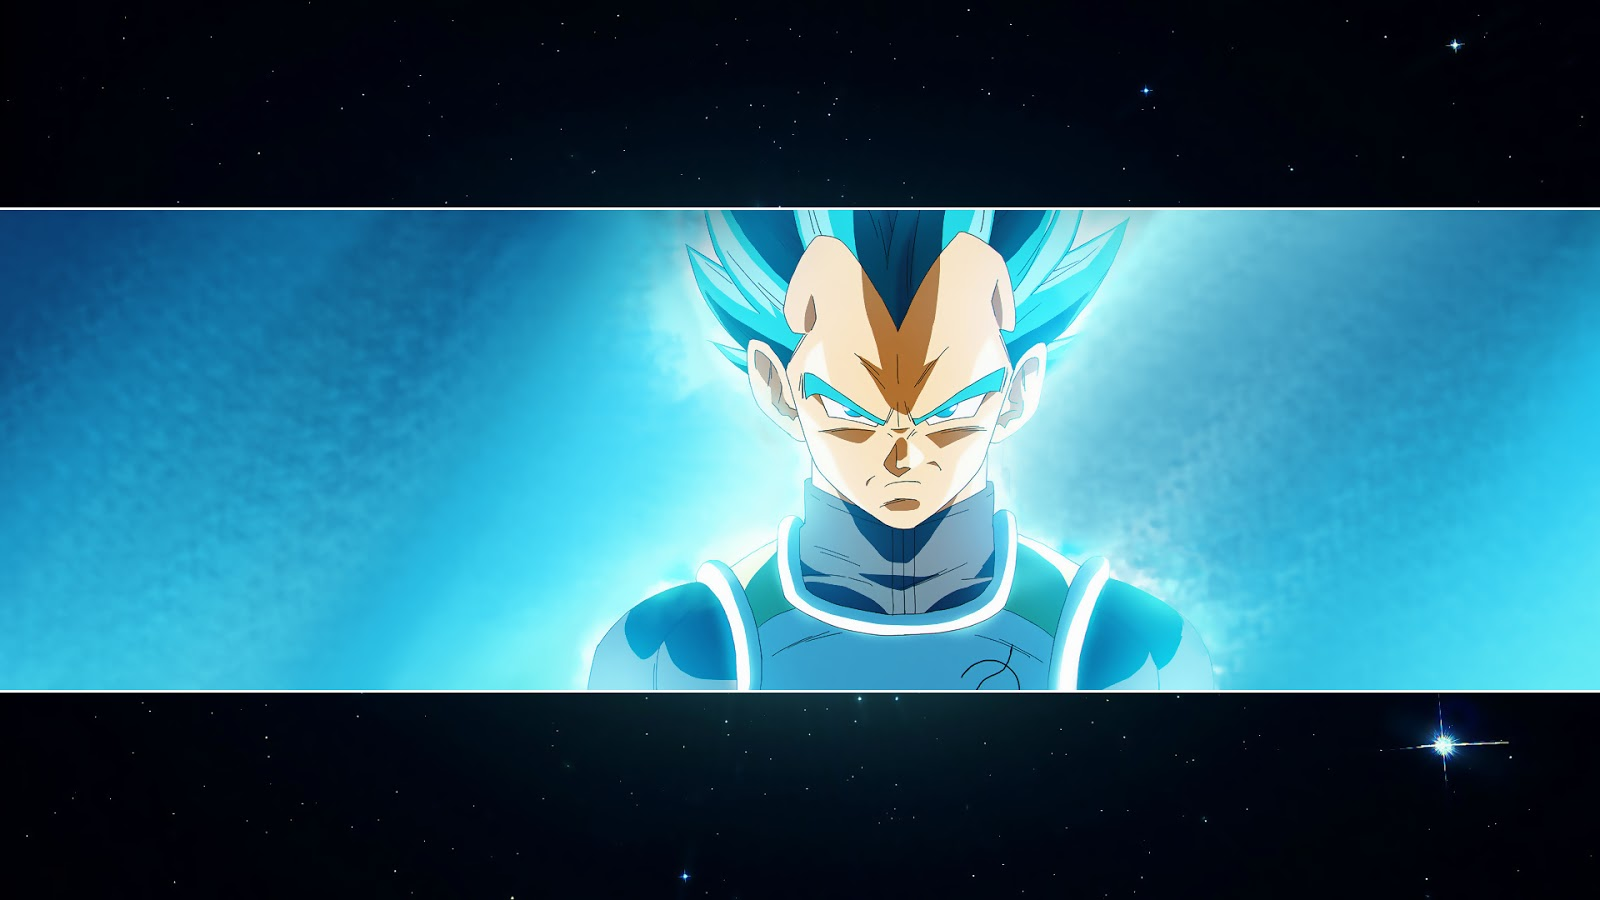 50 Hd Dragon Ball Z Wallpapers 1920x1080 2019 Www